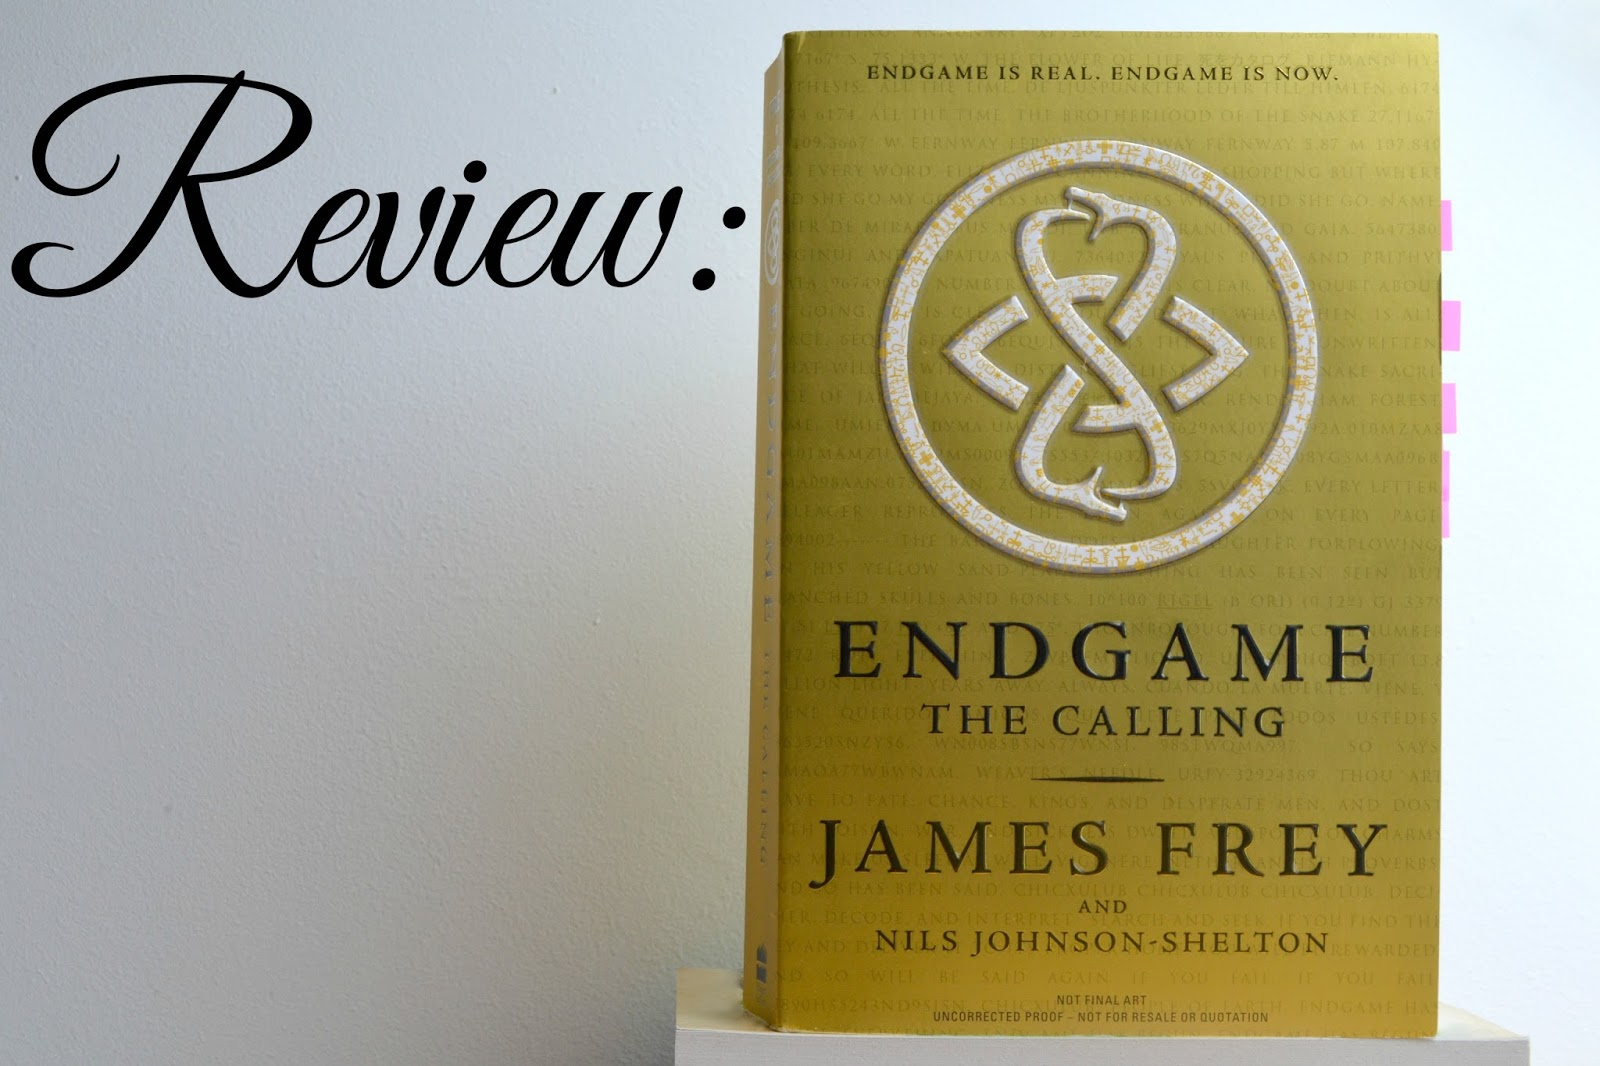 Endgame: The Calling by James Frey and Nils Johnson-Shelton